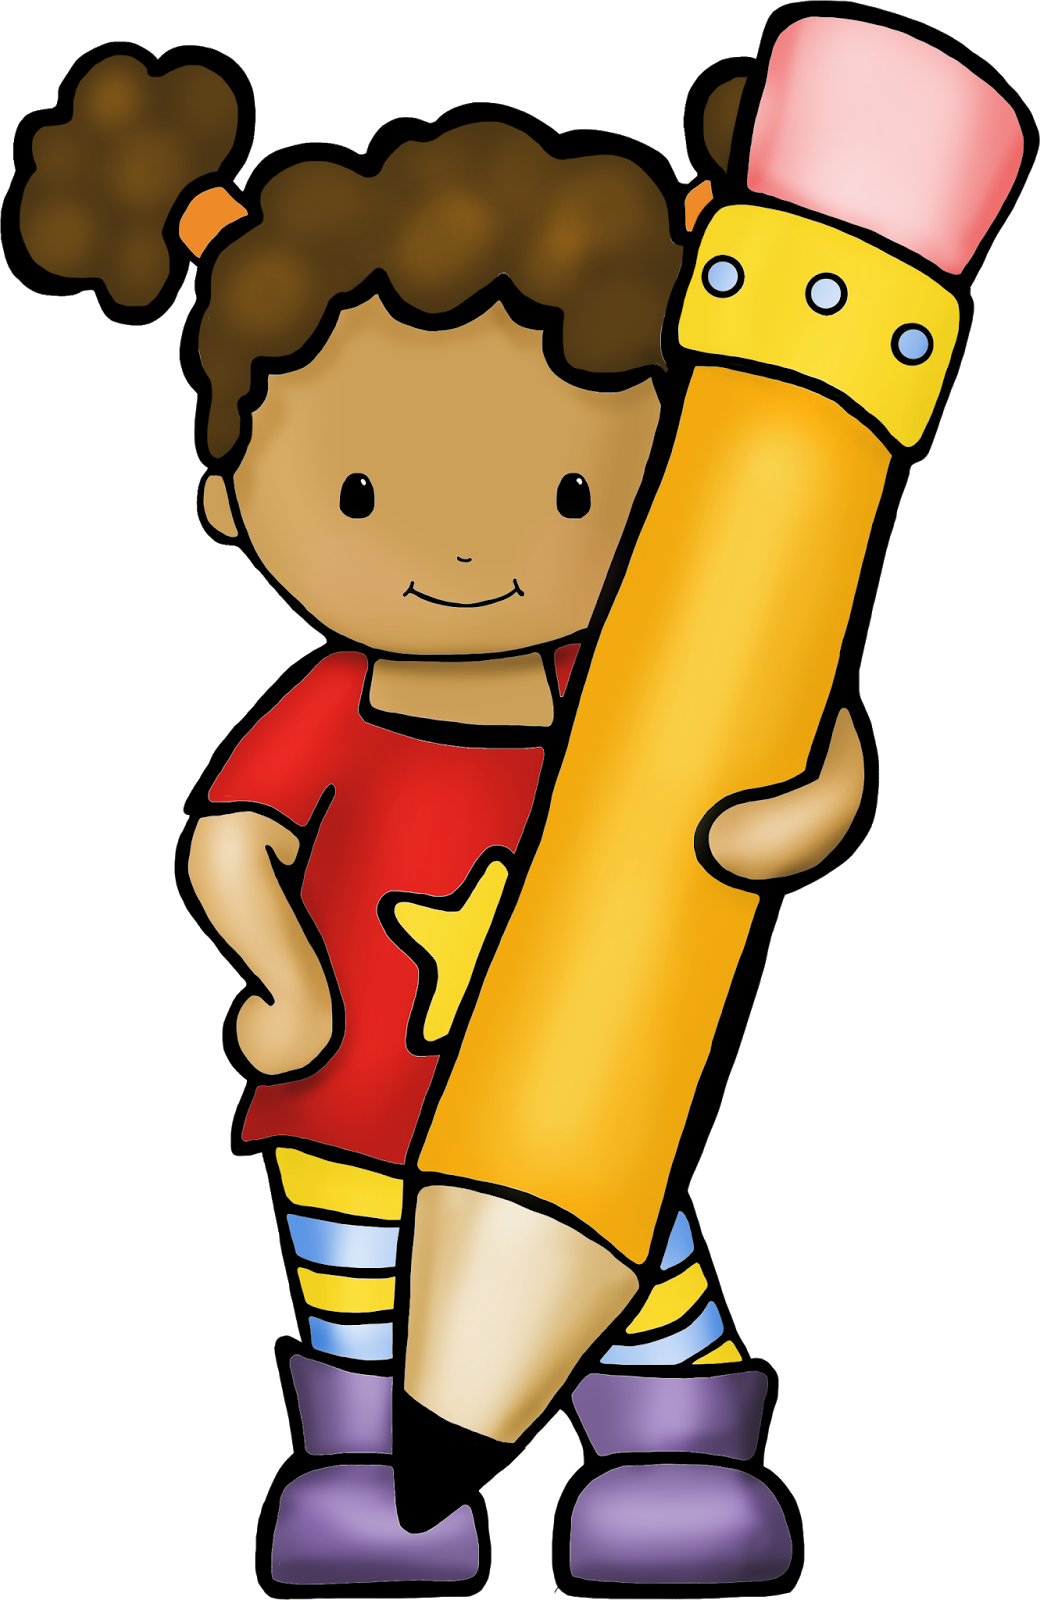 Whimsy workshop teaching differentiation. Clipart teacher strategy